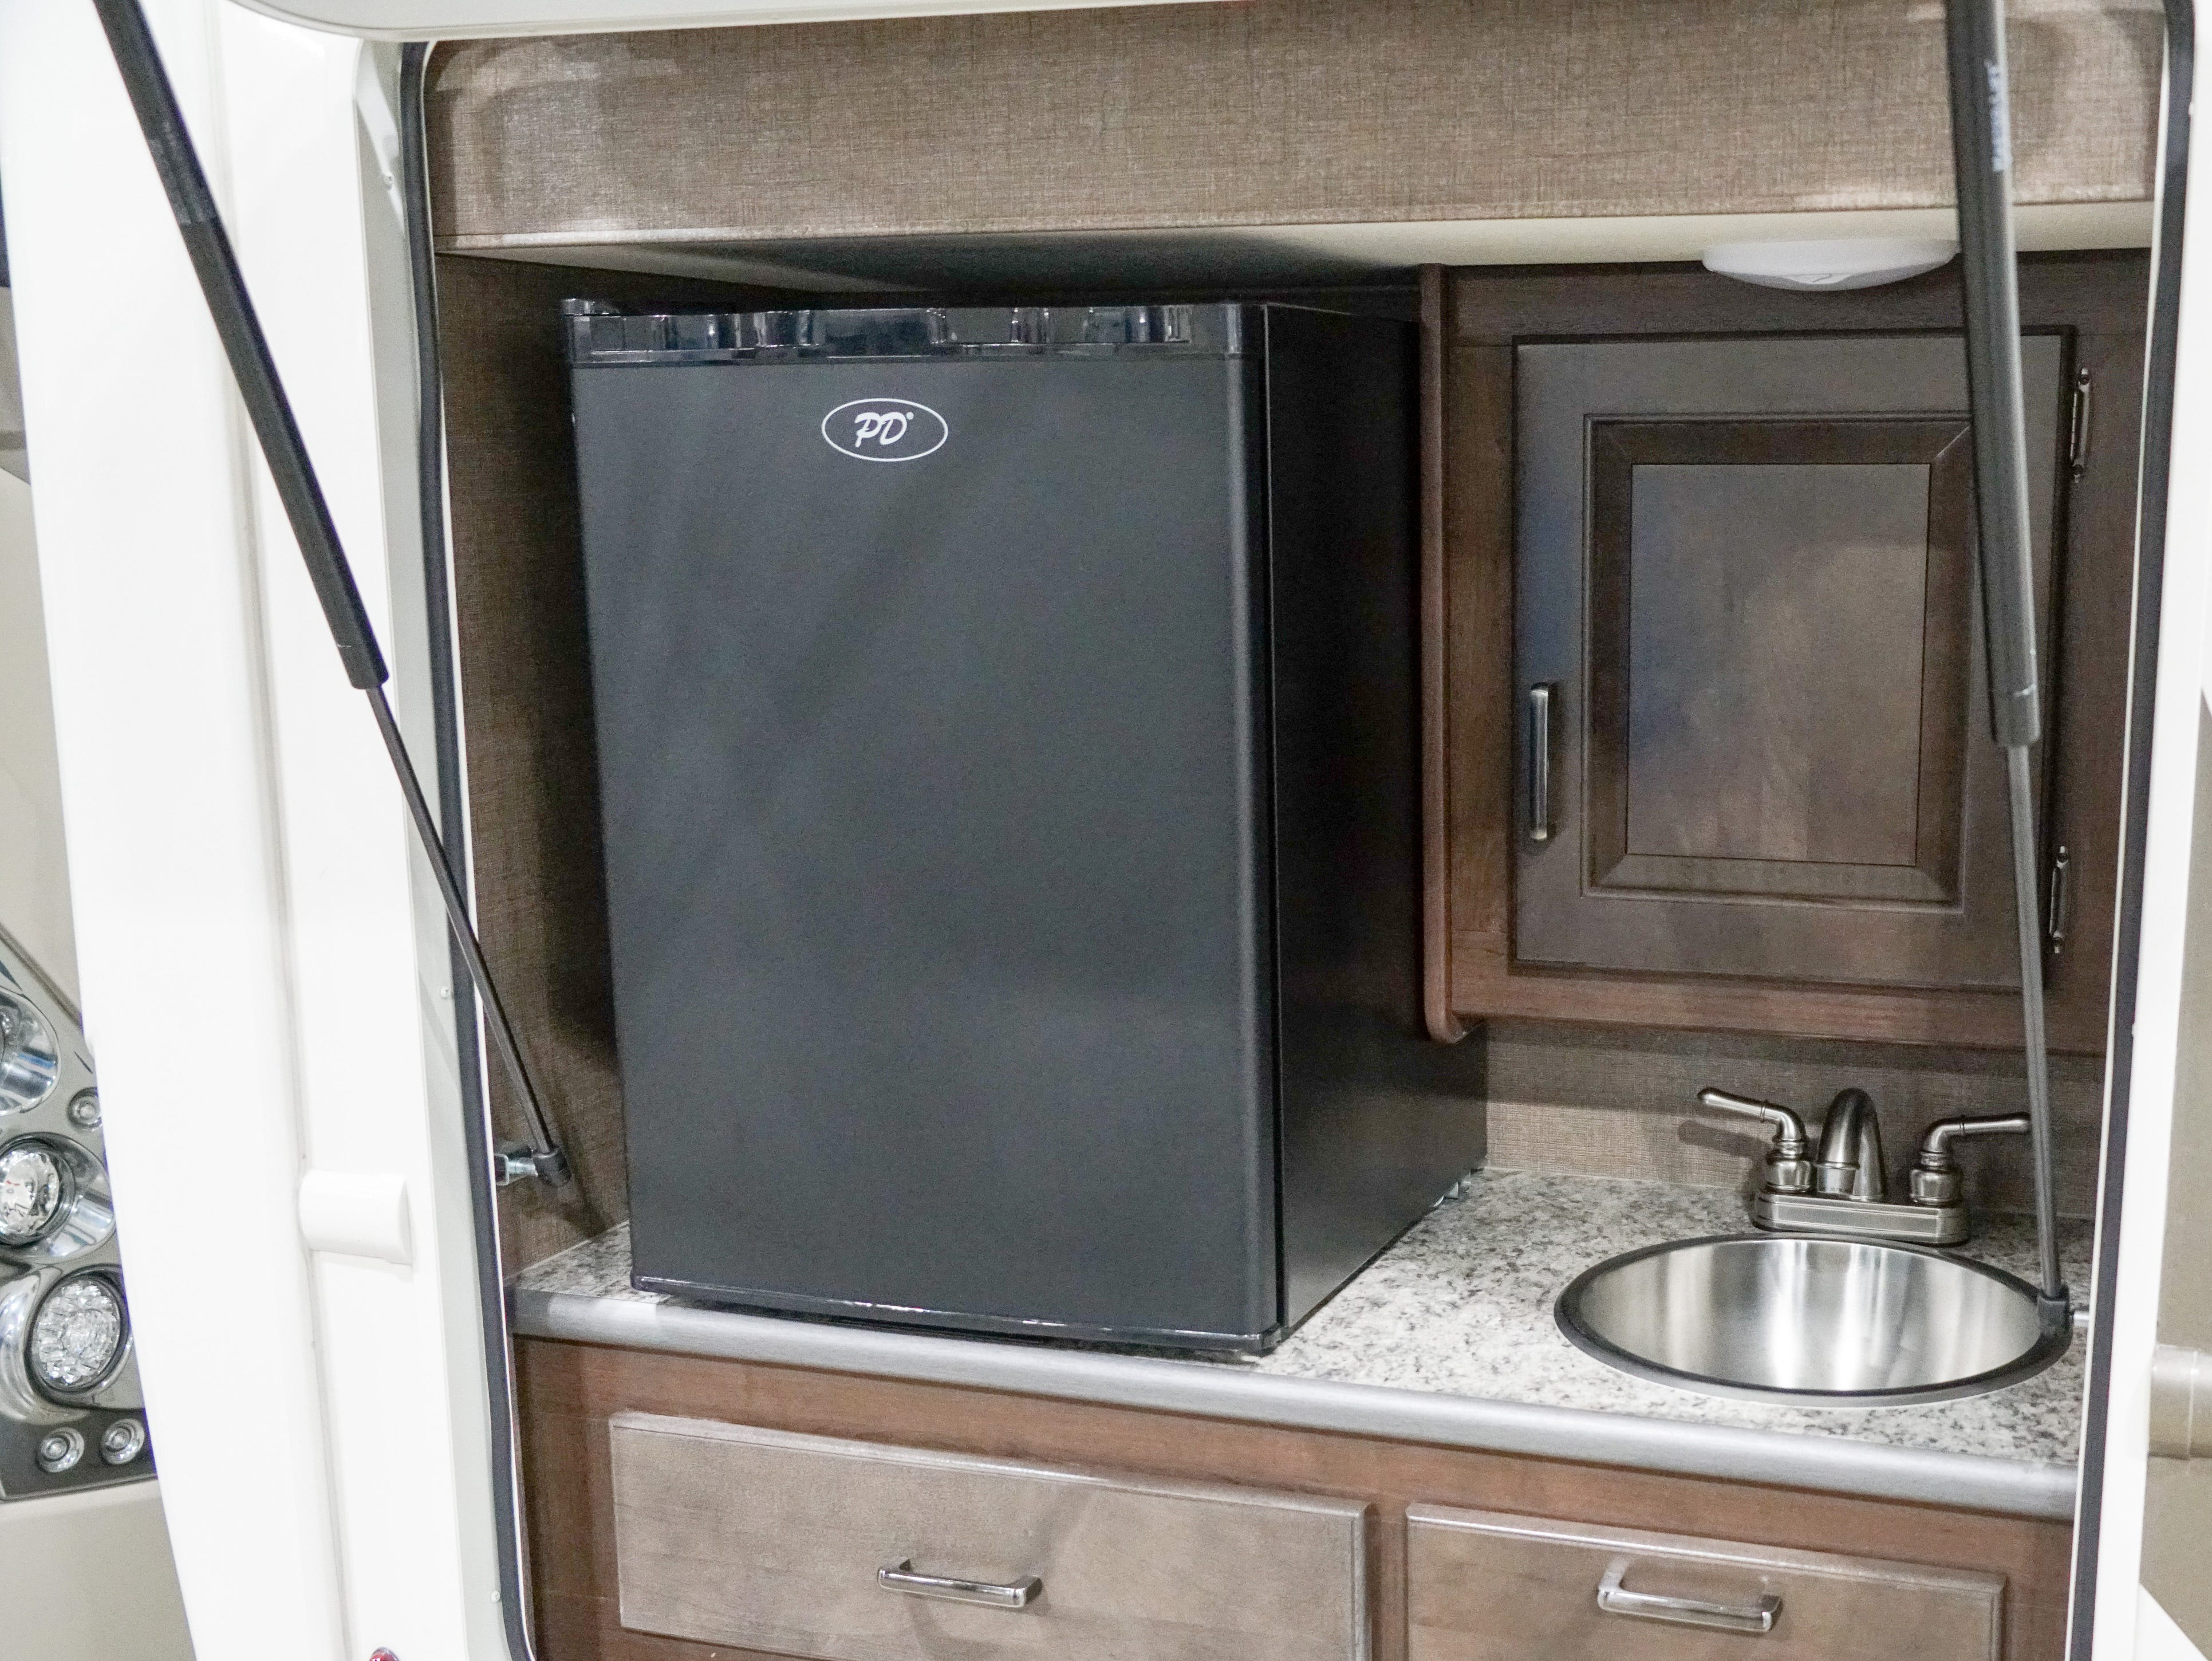 Outdoor sinks and refrigerators are now common on many larger RV trailers.